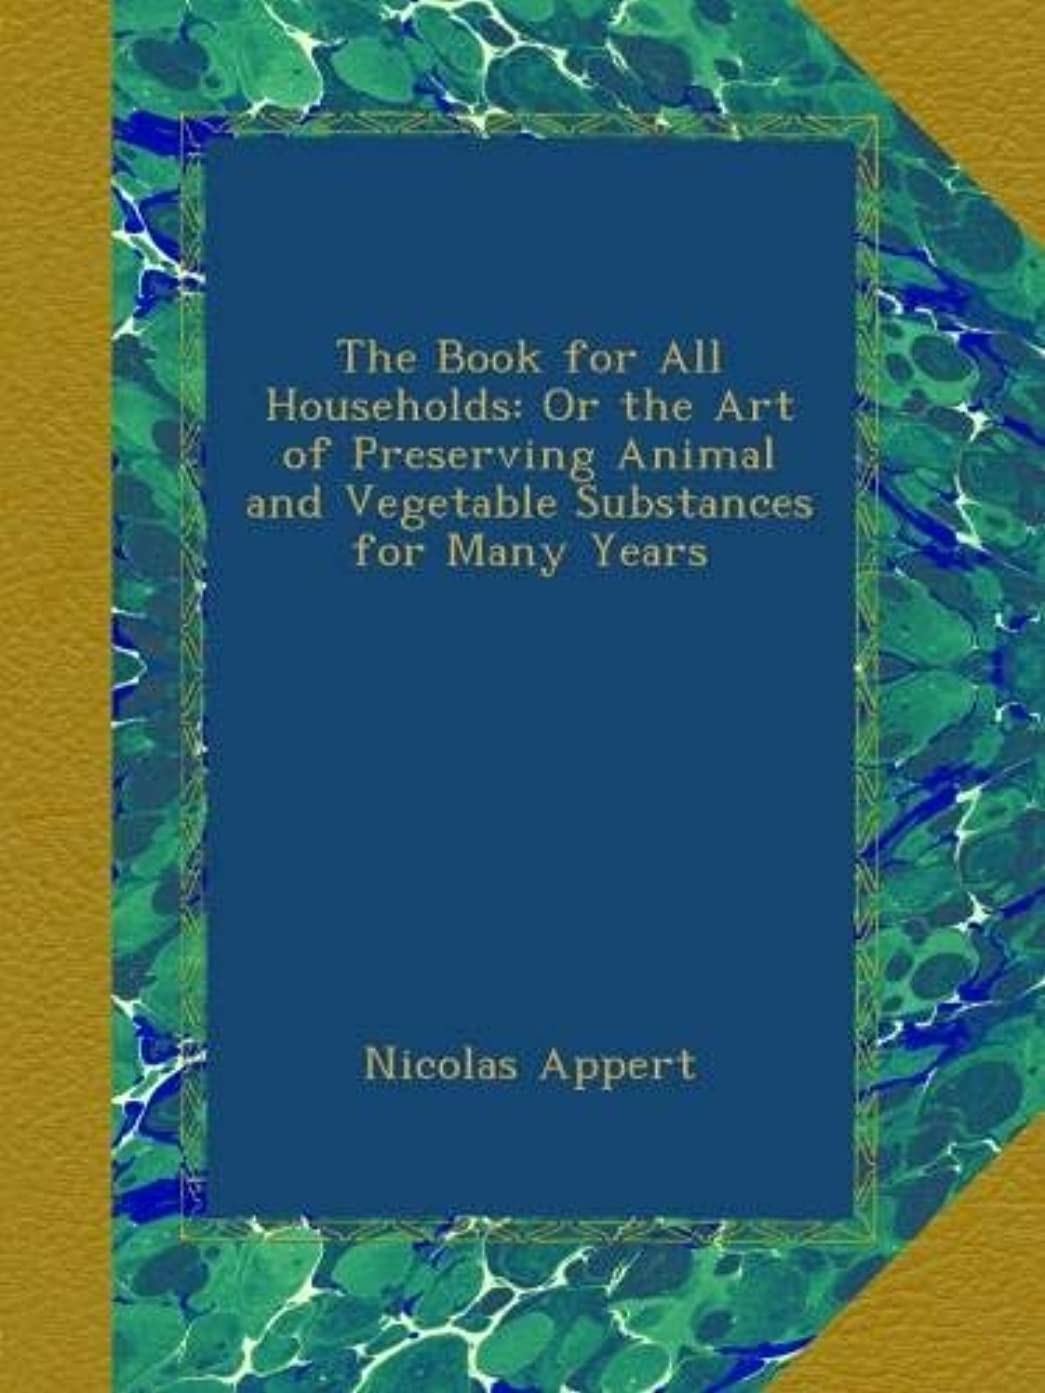 上流のパートナー専門化するThe Book for All Households: Or the Art of Preserving Animal and Vegetable Substances for Many Years